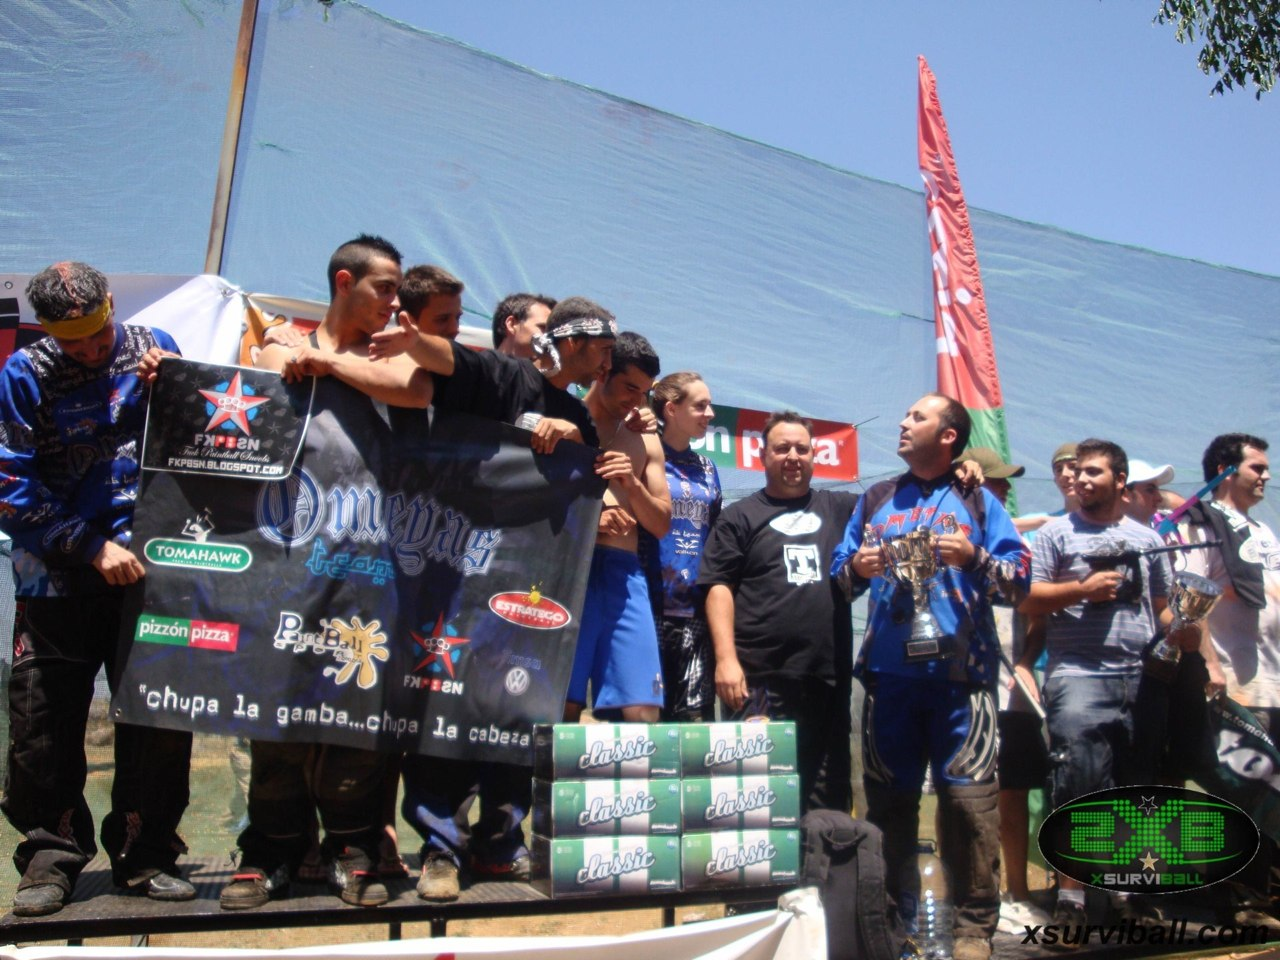 2010 julio 21 noticias megacampo for Megacampo paintball madrid oficinas madrid